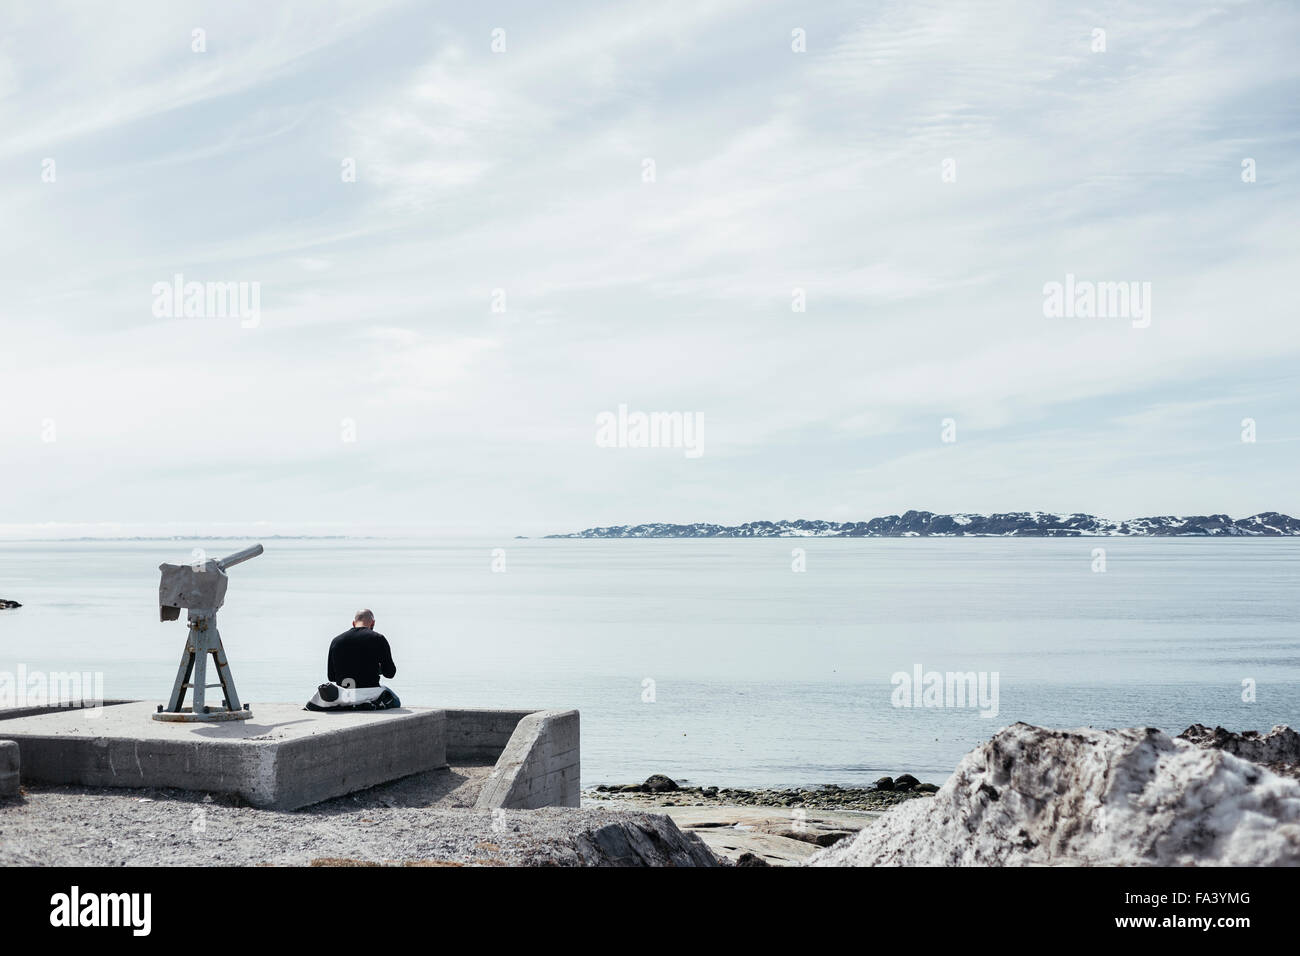 Rear view of man sitting by telescope overlooking sea against sky - Stock Image